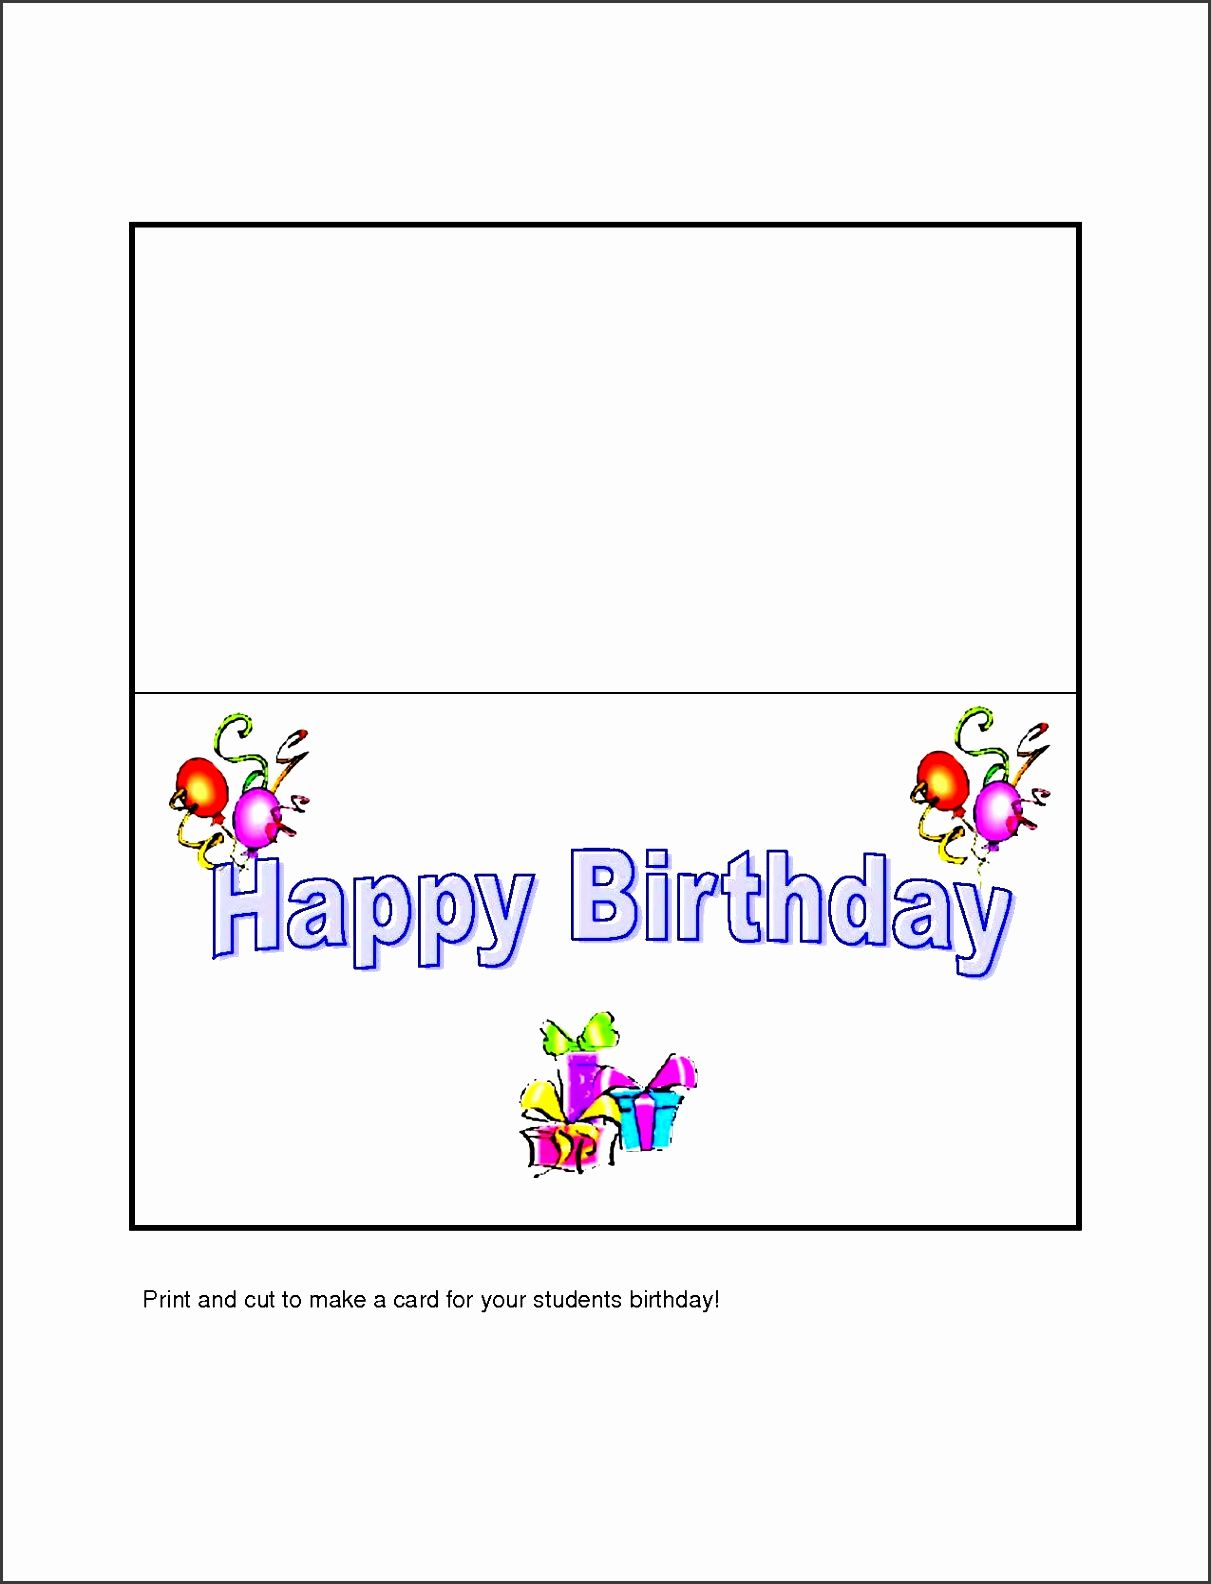 Beautiful 10 Free Microsoft Word Greeting Card Templates Pertaining To Birthday Card Templat Greeting Card Template Birthday Card Template Happy Birthday Cards